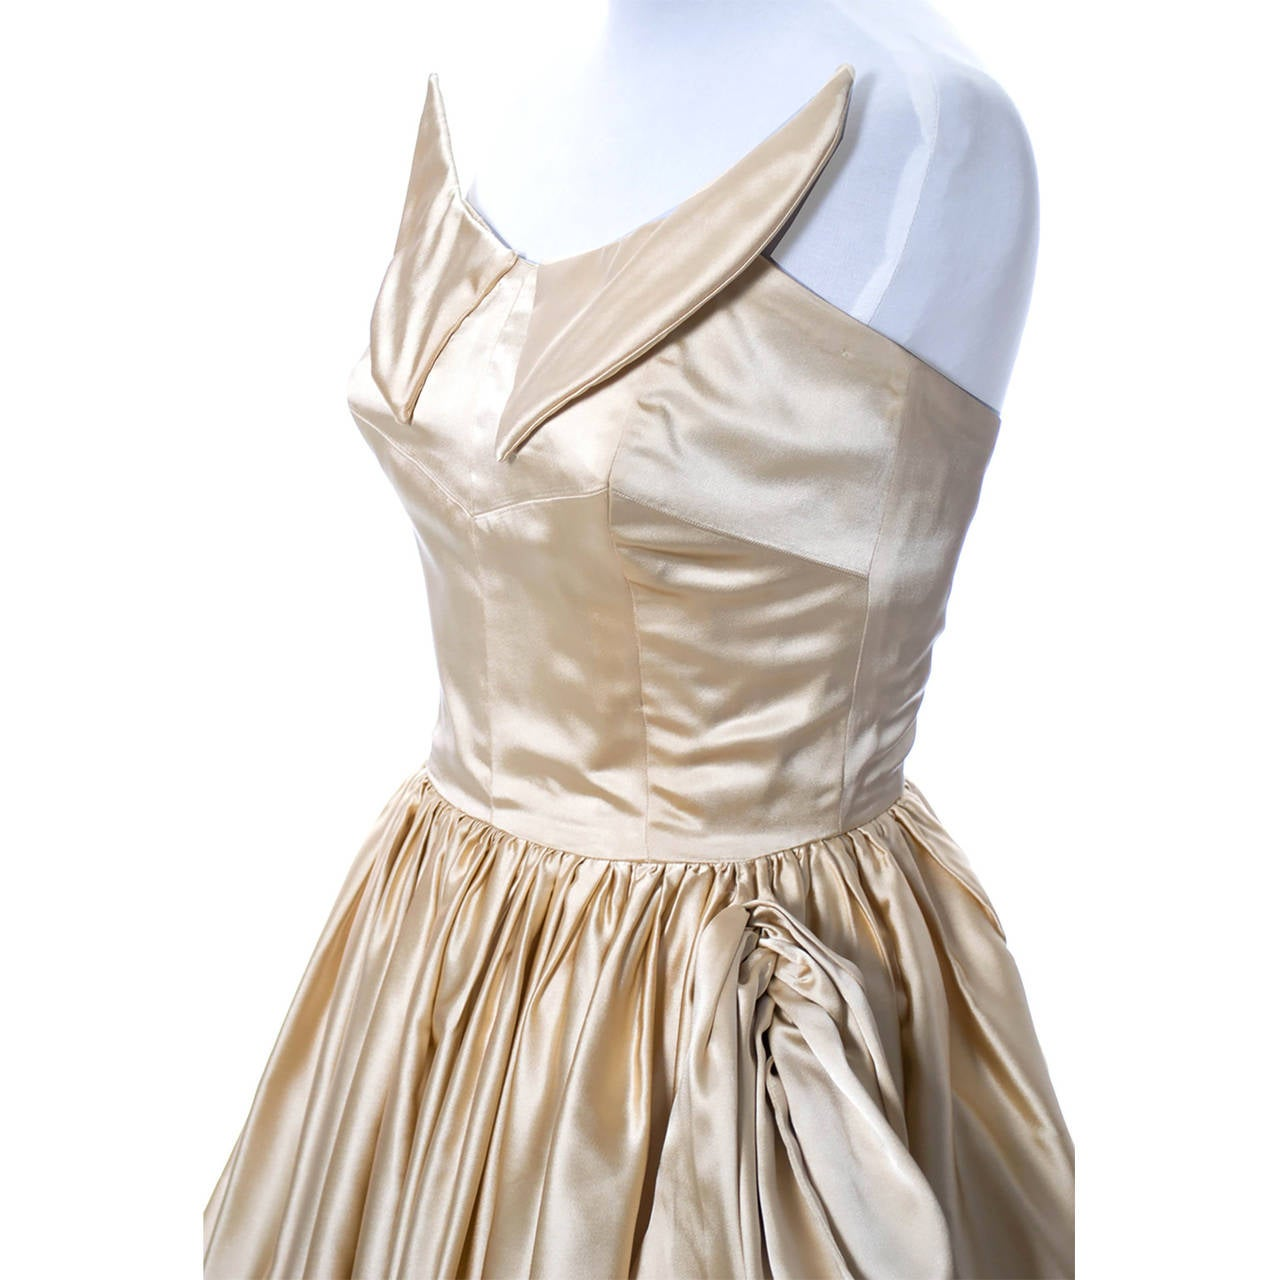 1950s Vintage Dress Champagne Satin Winged Bust Wedding Peg Powers Original 3